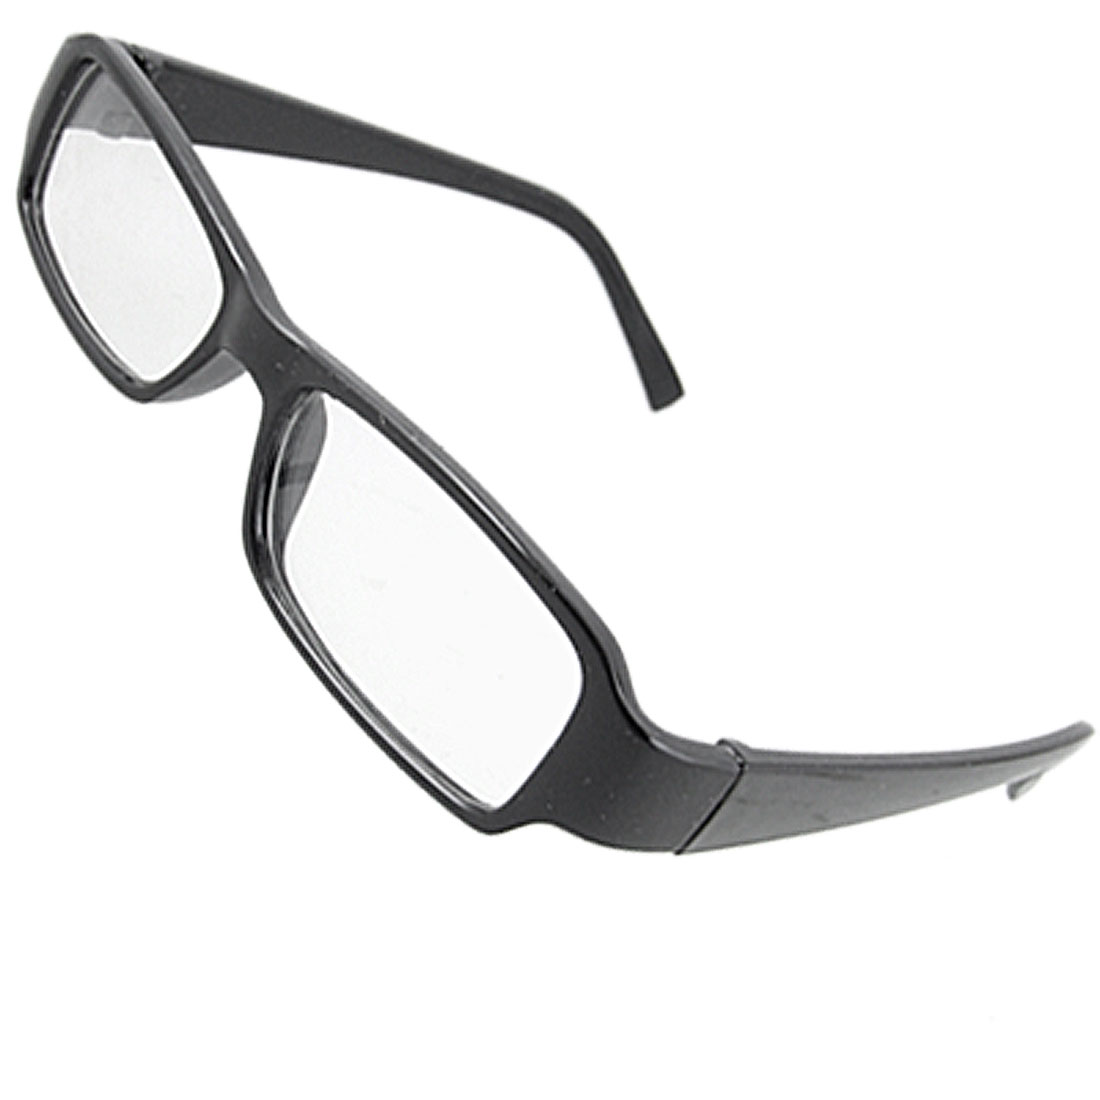 Unisex Plastic Black Full Rim Frame Eyeglasses Clear Lens Glasses